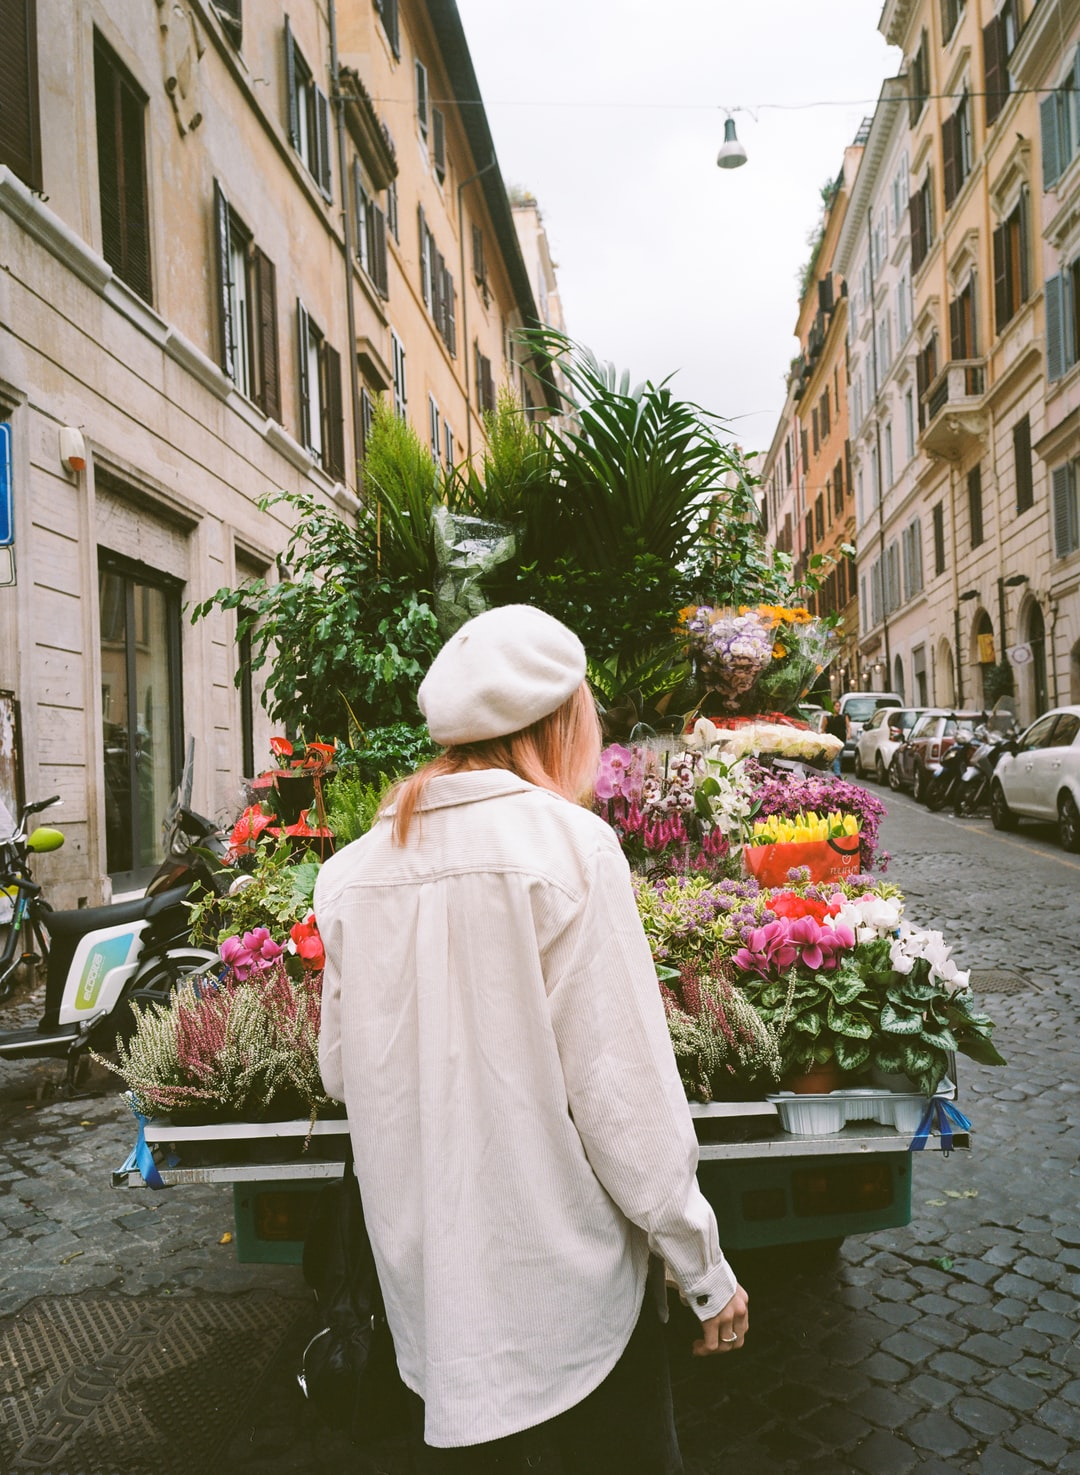 Floral truck in the streets of Rome